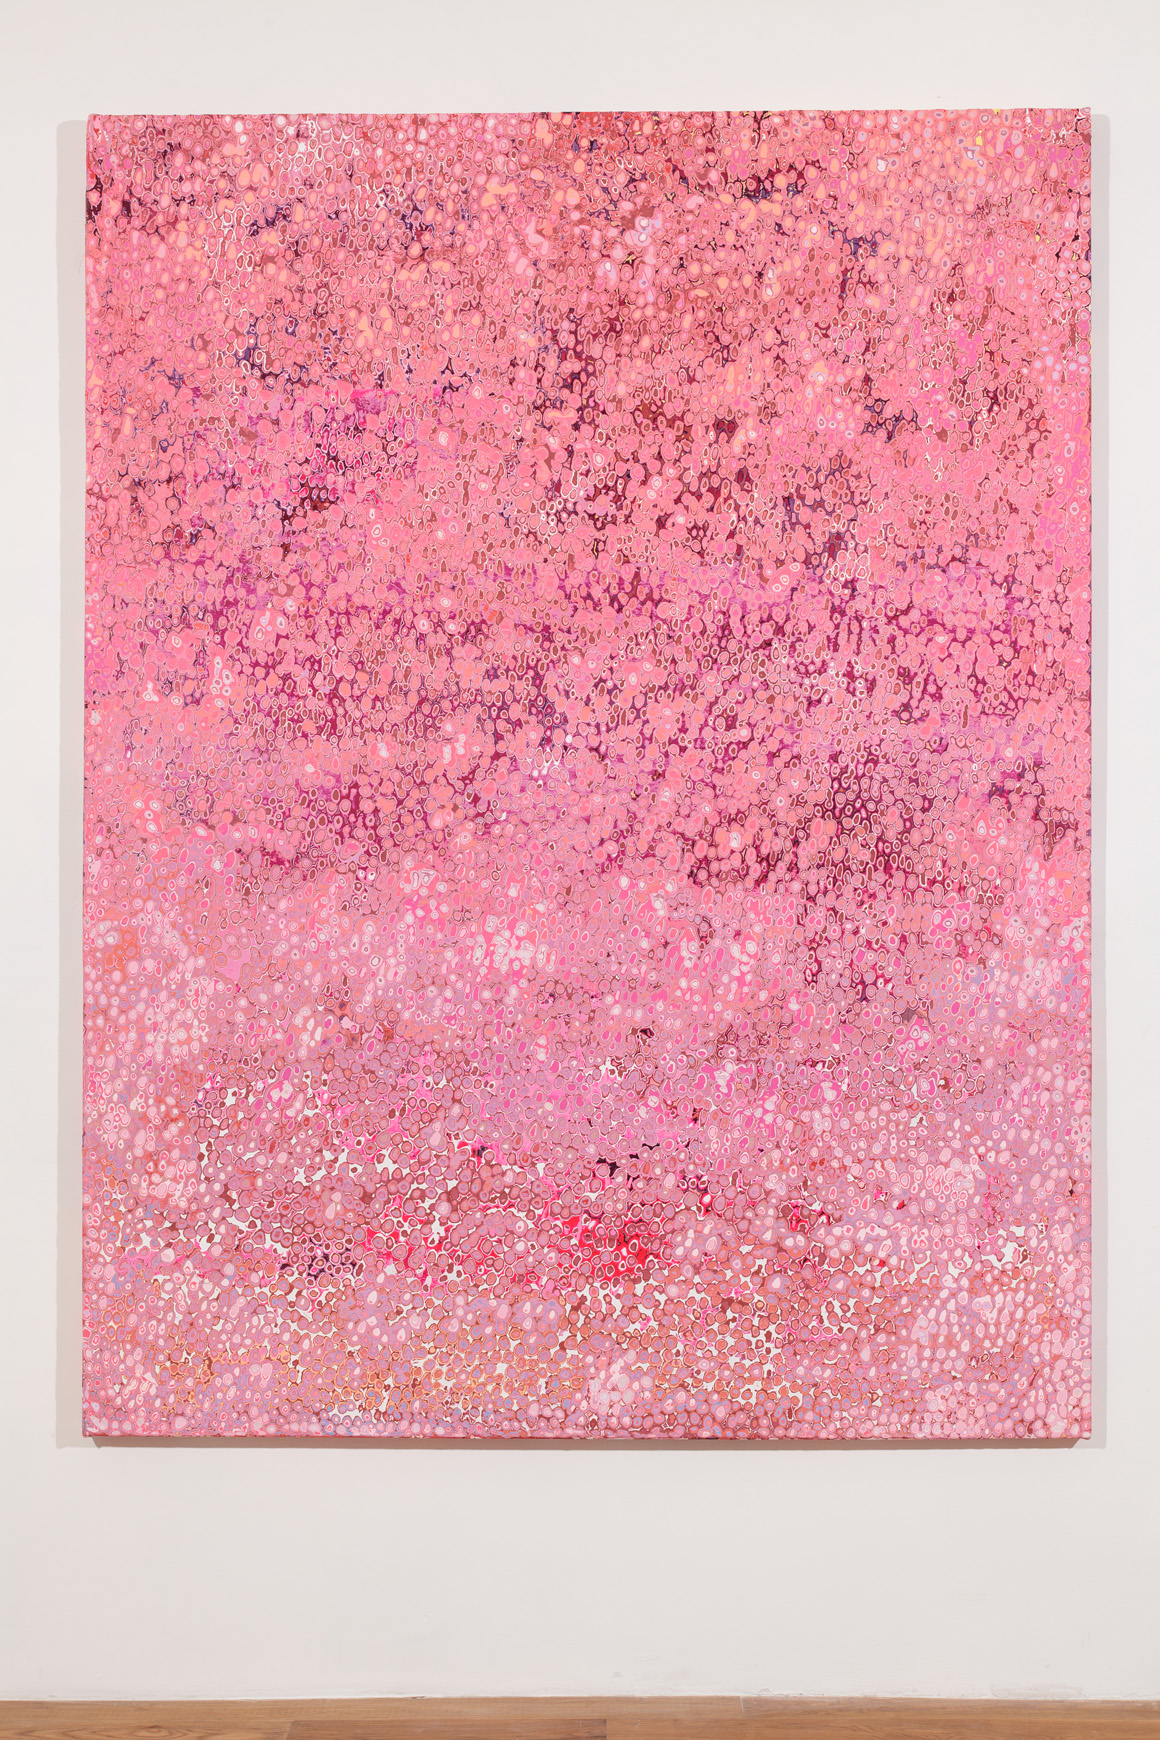 <p><em>Millennial Pink</em><span class='media'>Latex on canvas</span>83.4 x 63.3 in  (211.8 x 160.7 cm)<br>2017<br></p>